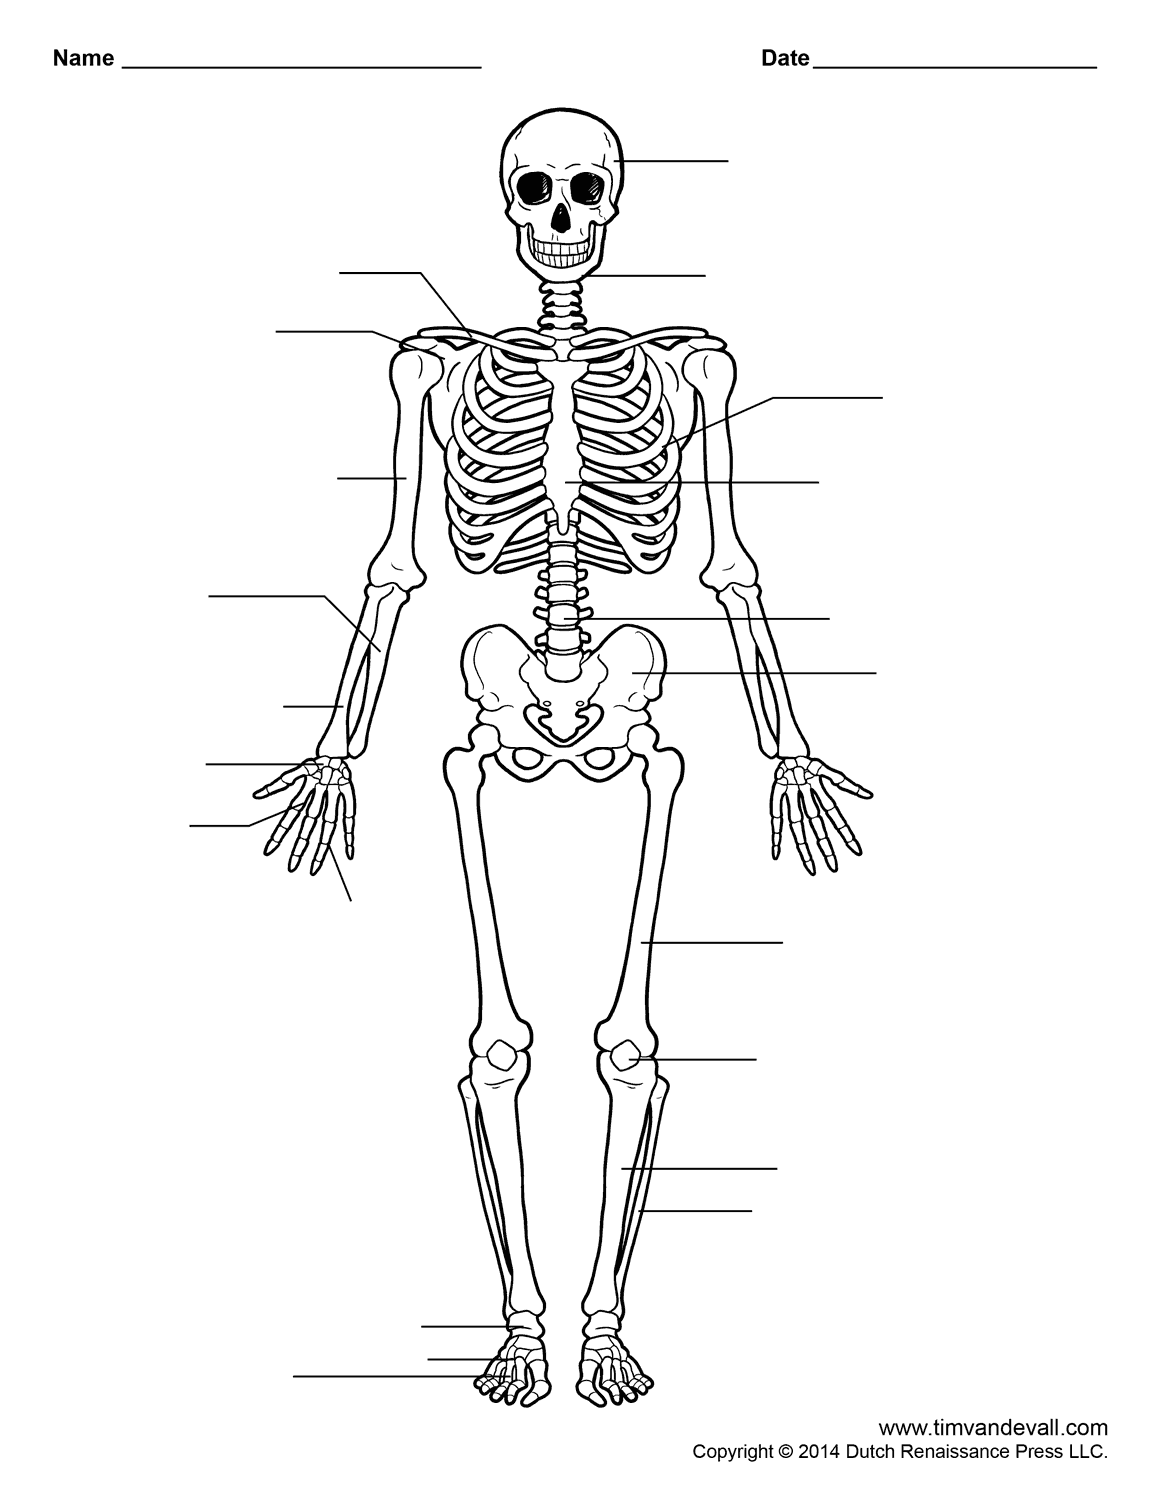 worksheet Skeletal System Fill In The Blank Worksheet free printable human skeleton worksheet for students and teachers worksheet